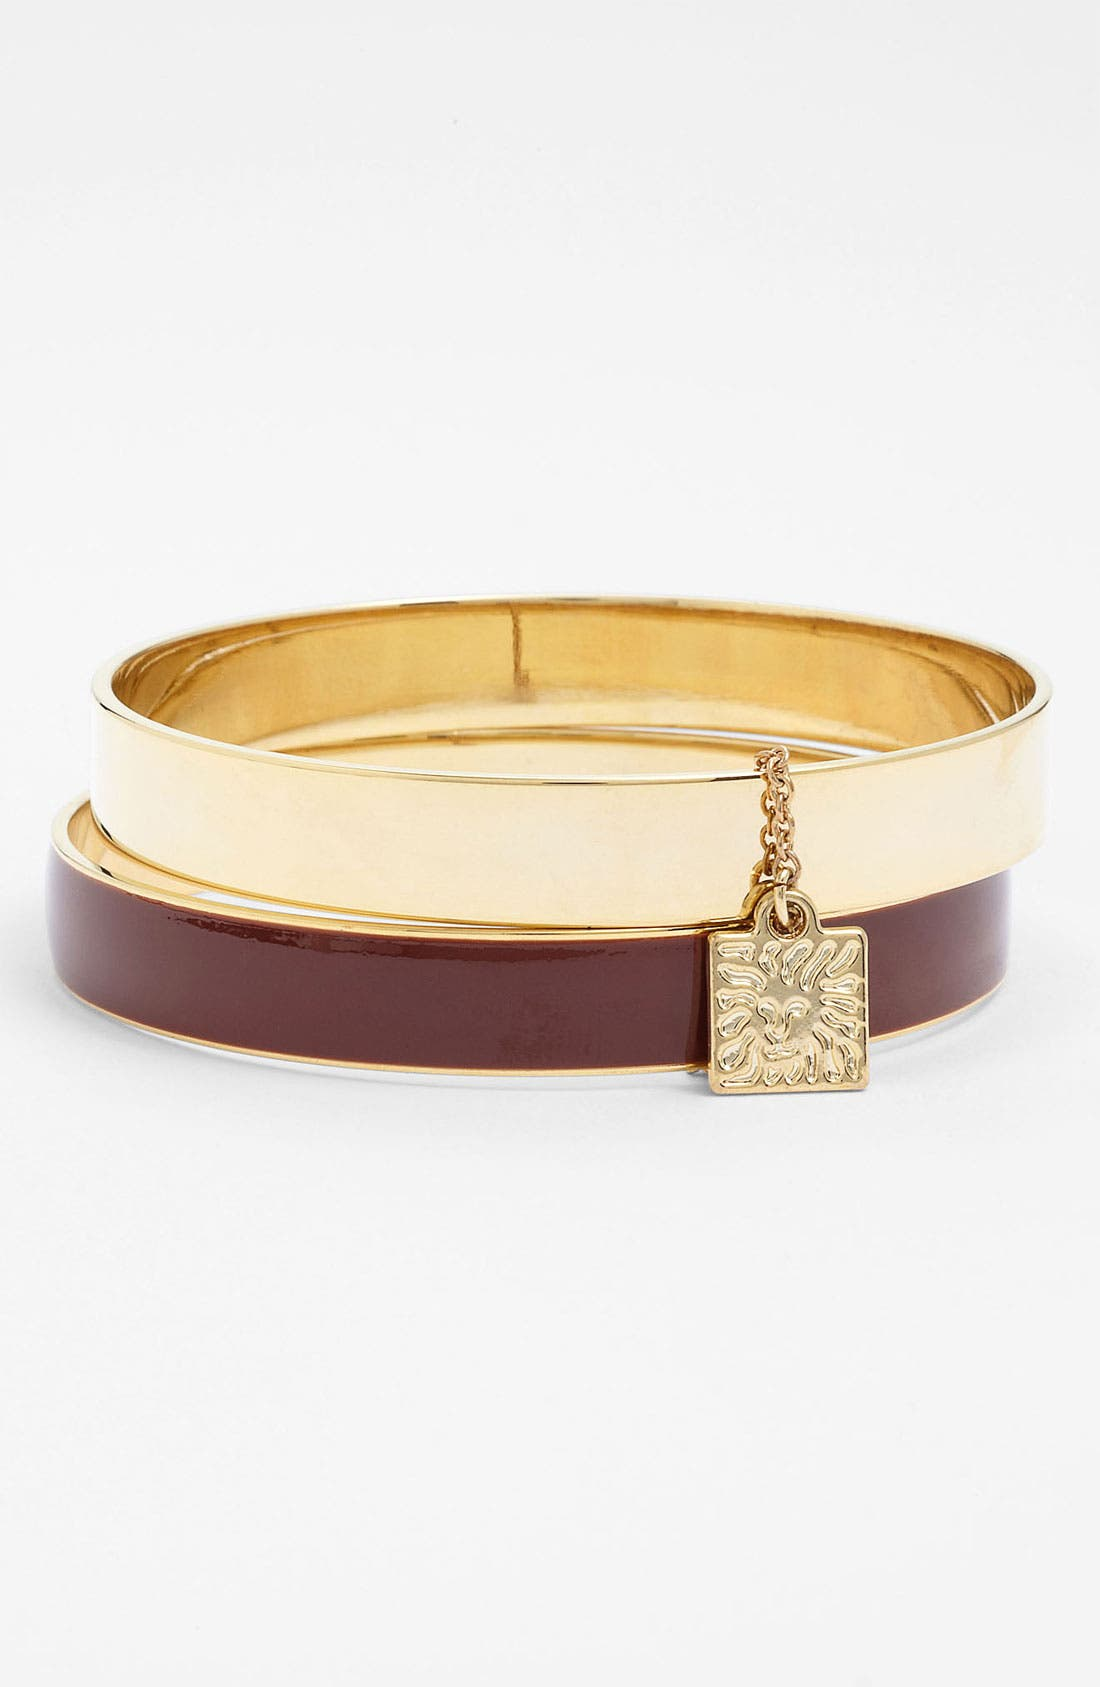 Main Image - Anne Klein Enamel Bangles (Set of 2)